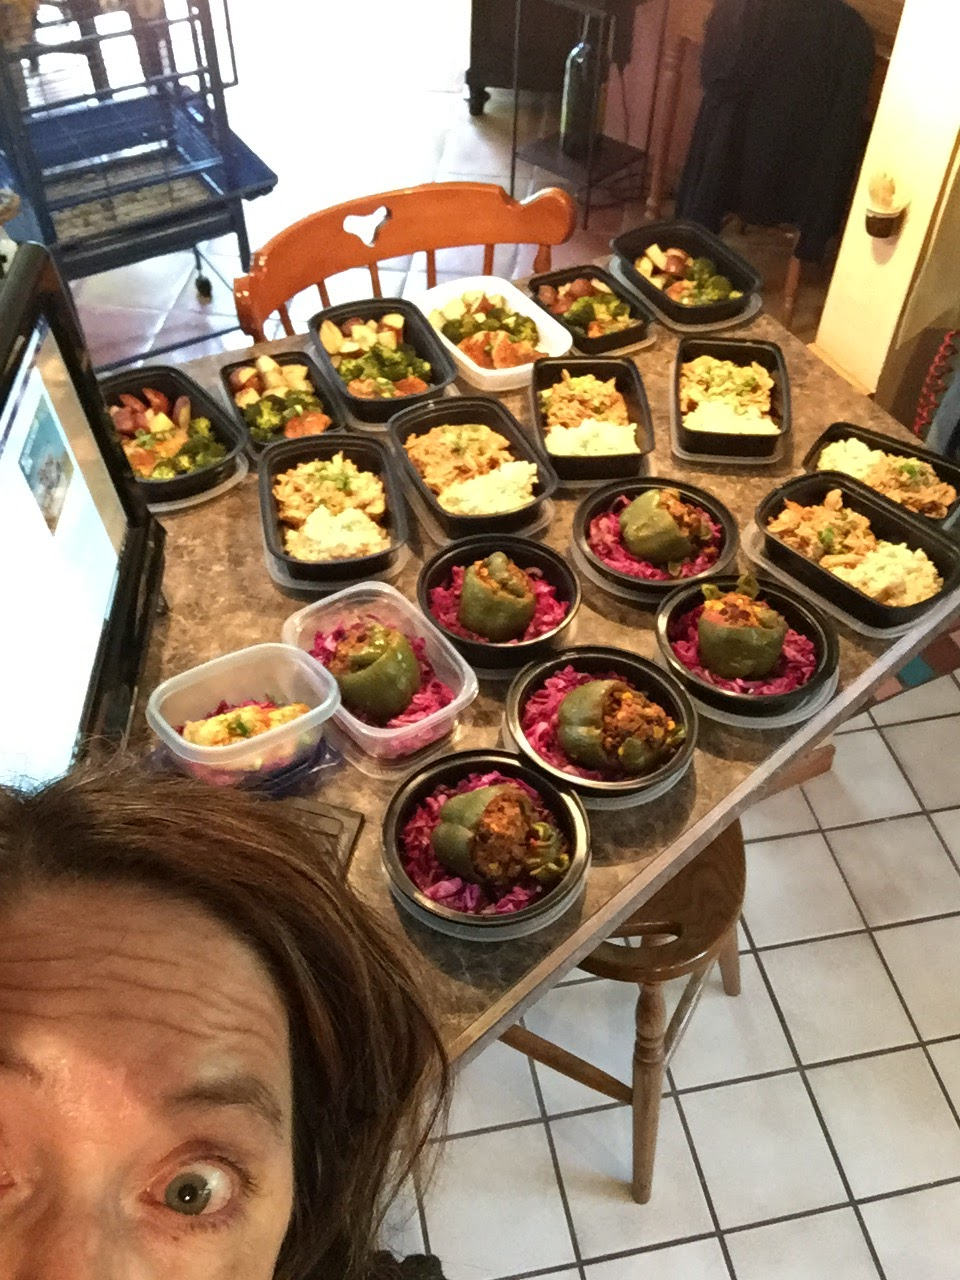 susie 39 s paleo ish life meal prep day stuffed peppers over sauteed red cabbage shredded. Black Bedroom Furniture Sets. Home Design Ideas